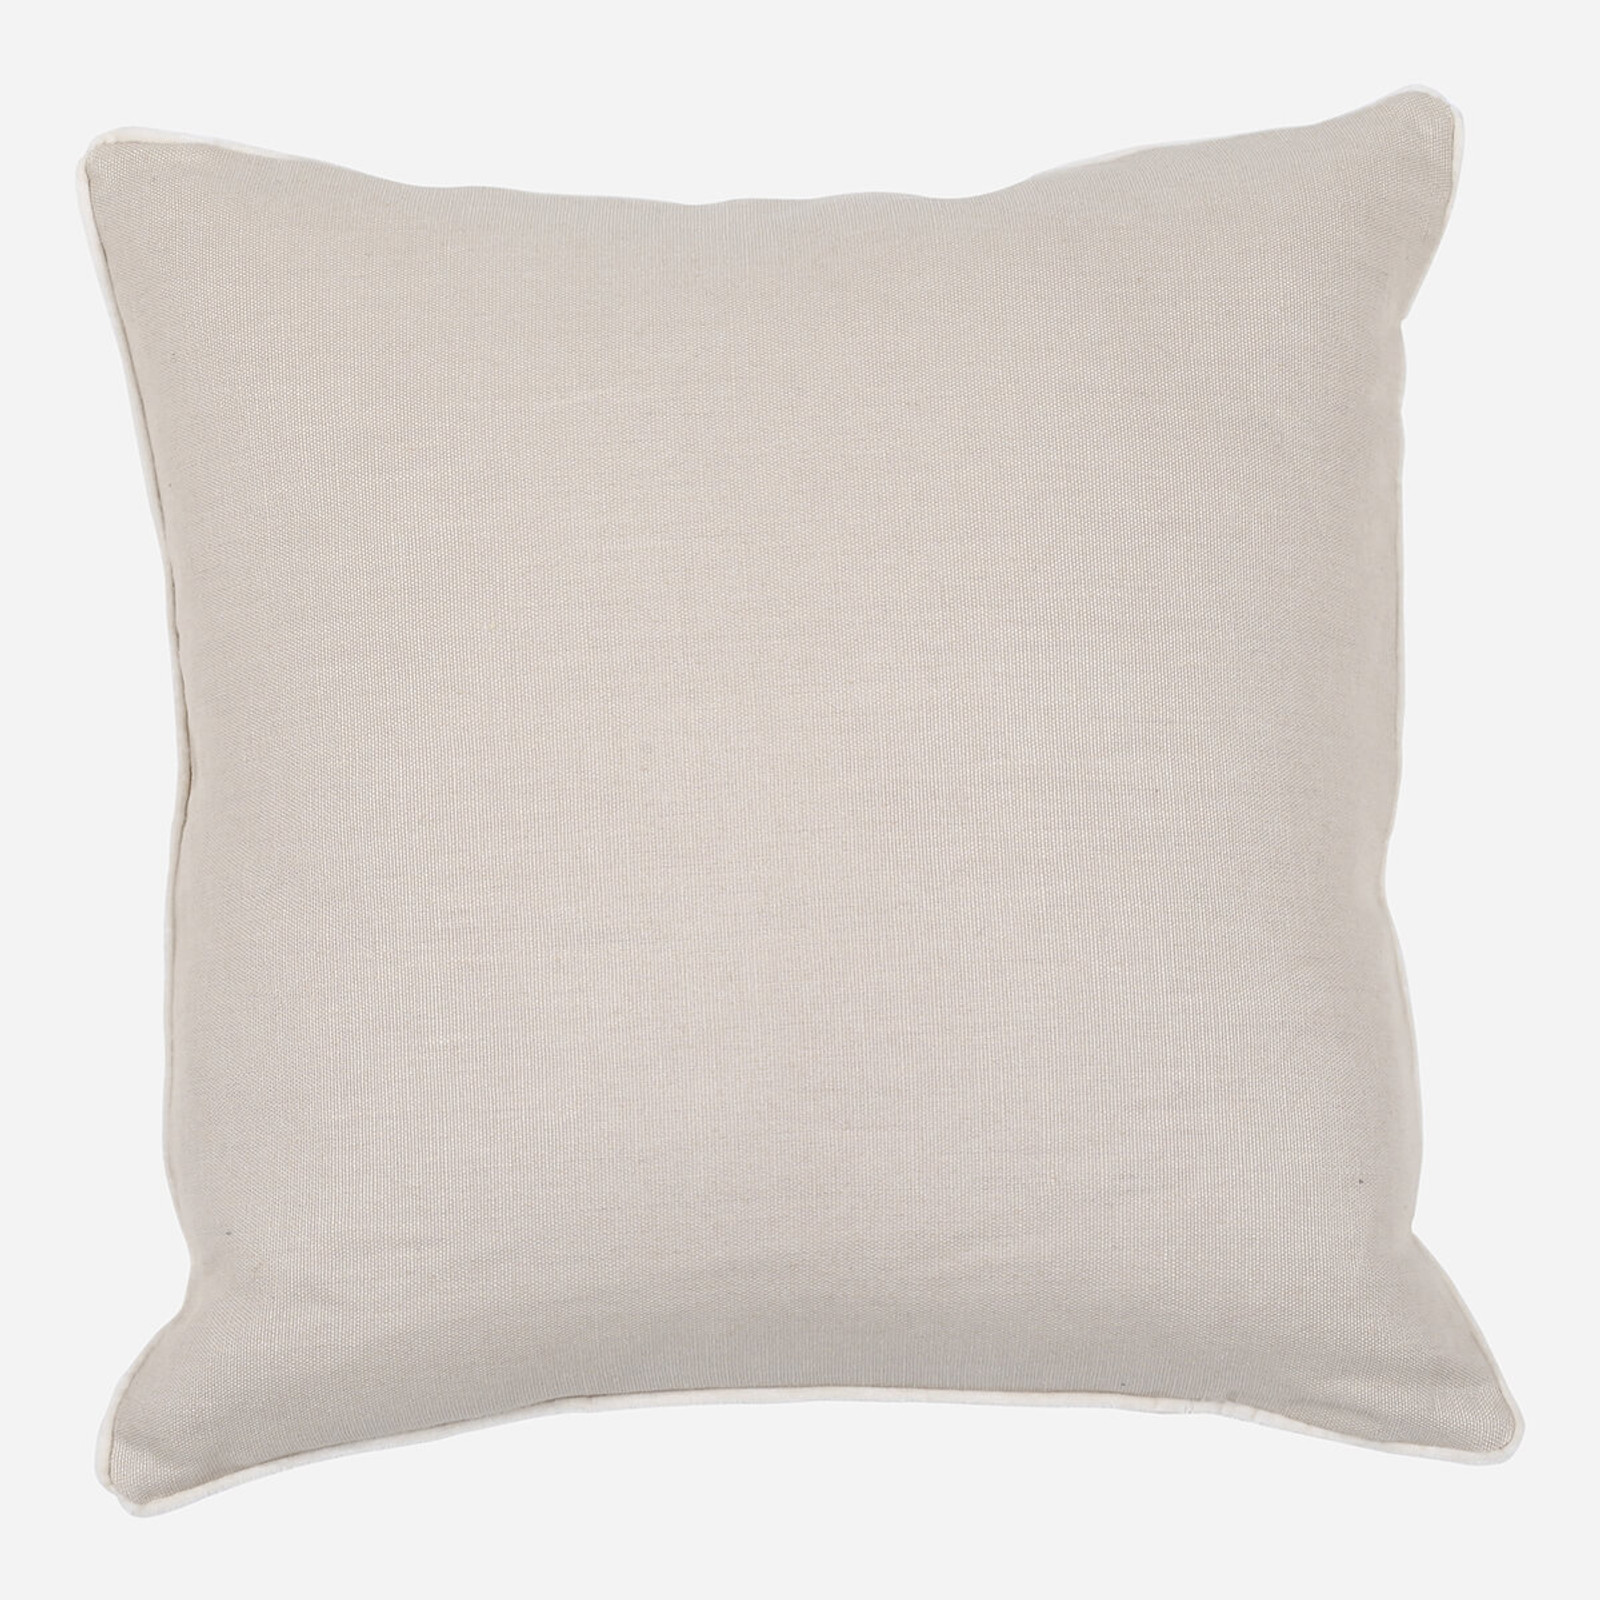 Taupe Linen with Velvet Pipe Pillow